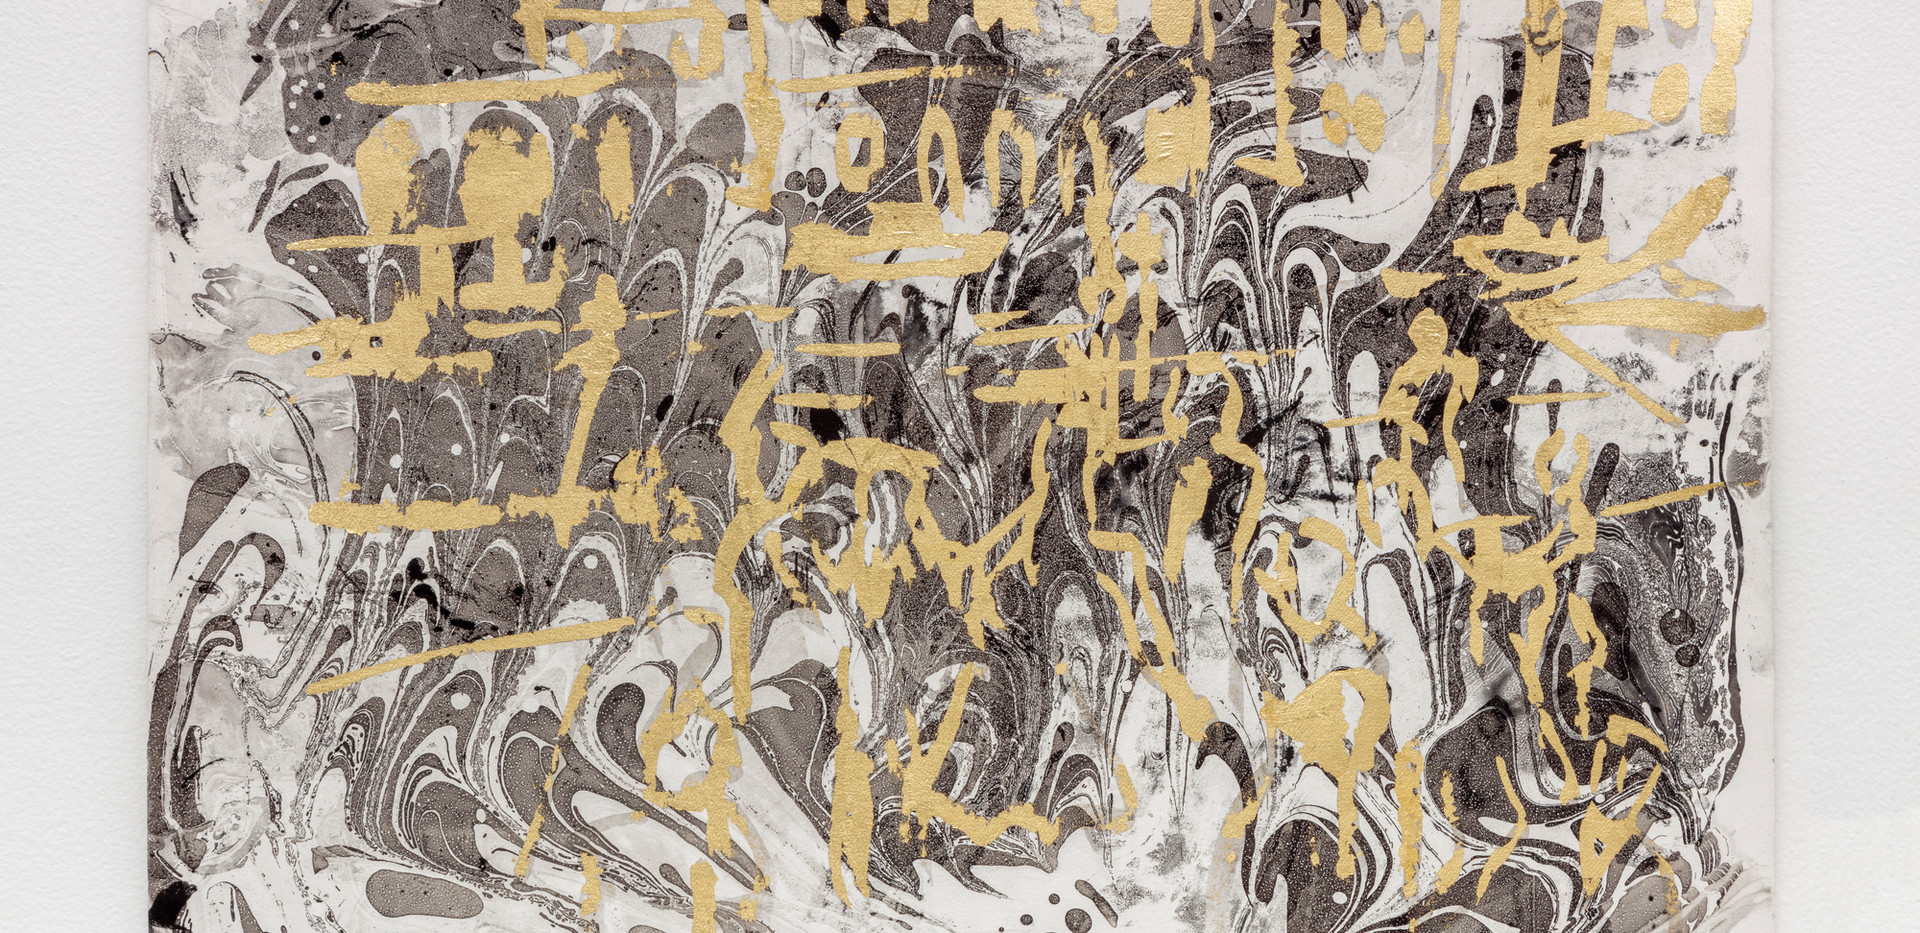 VIP party at Venice Biennal-2019 Gold foil on marbling rosaspina paper 35,5x50cm